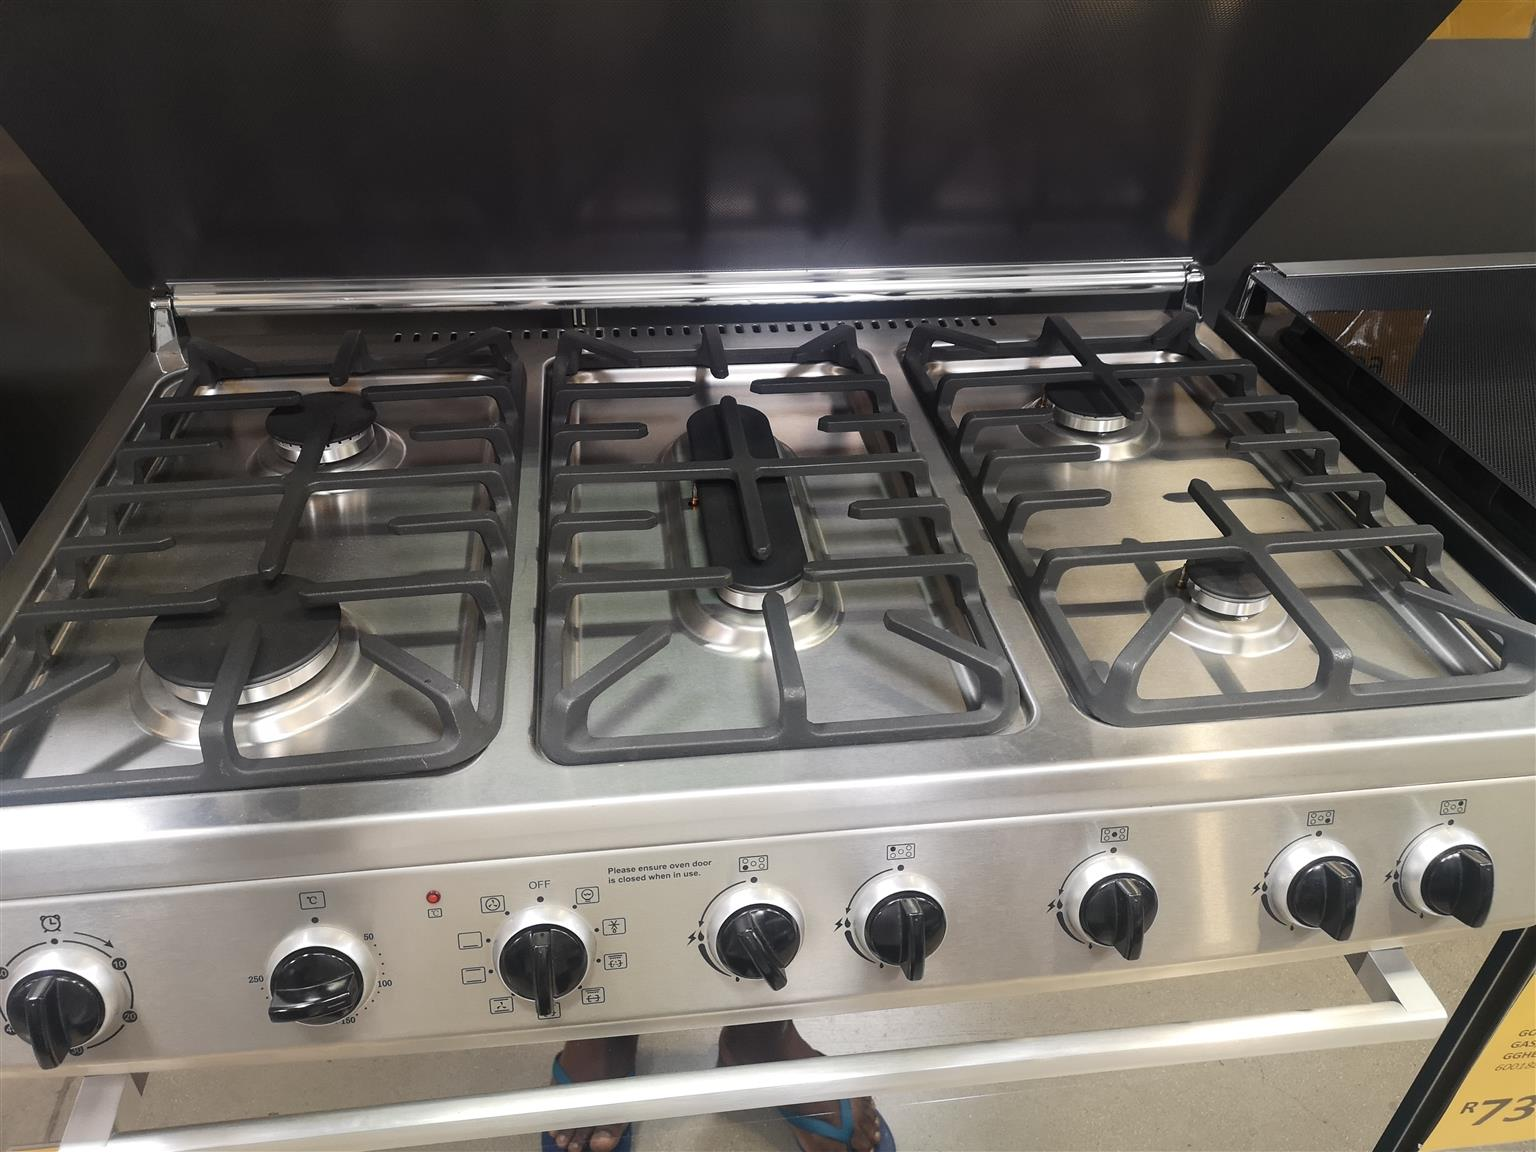 Stove(gas and electric)